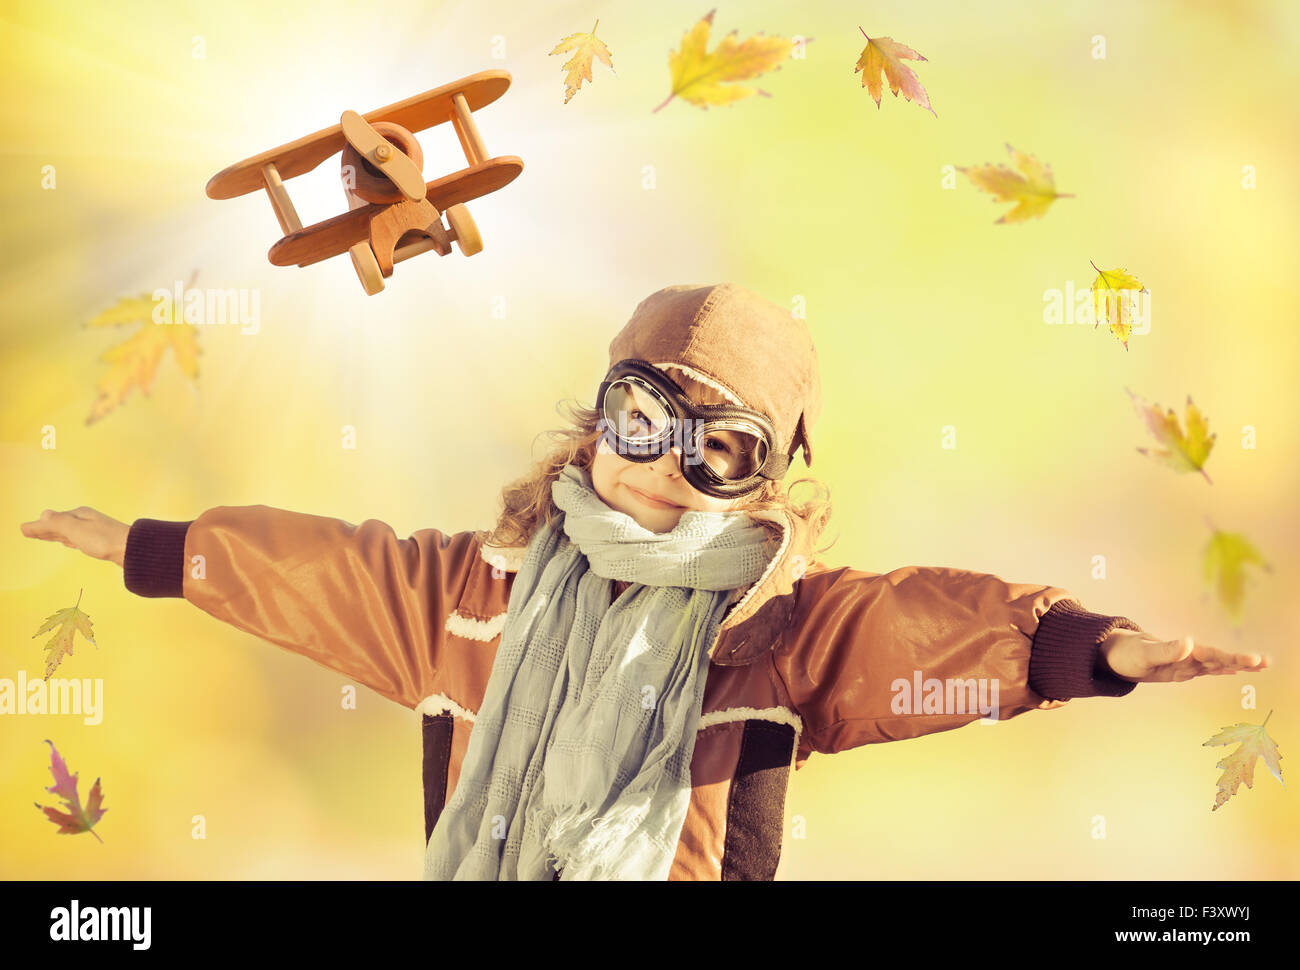 happy-kid-playing-with-toy-airplane-F3XW